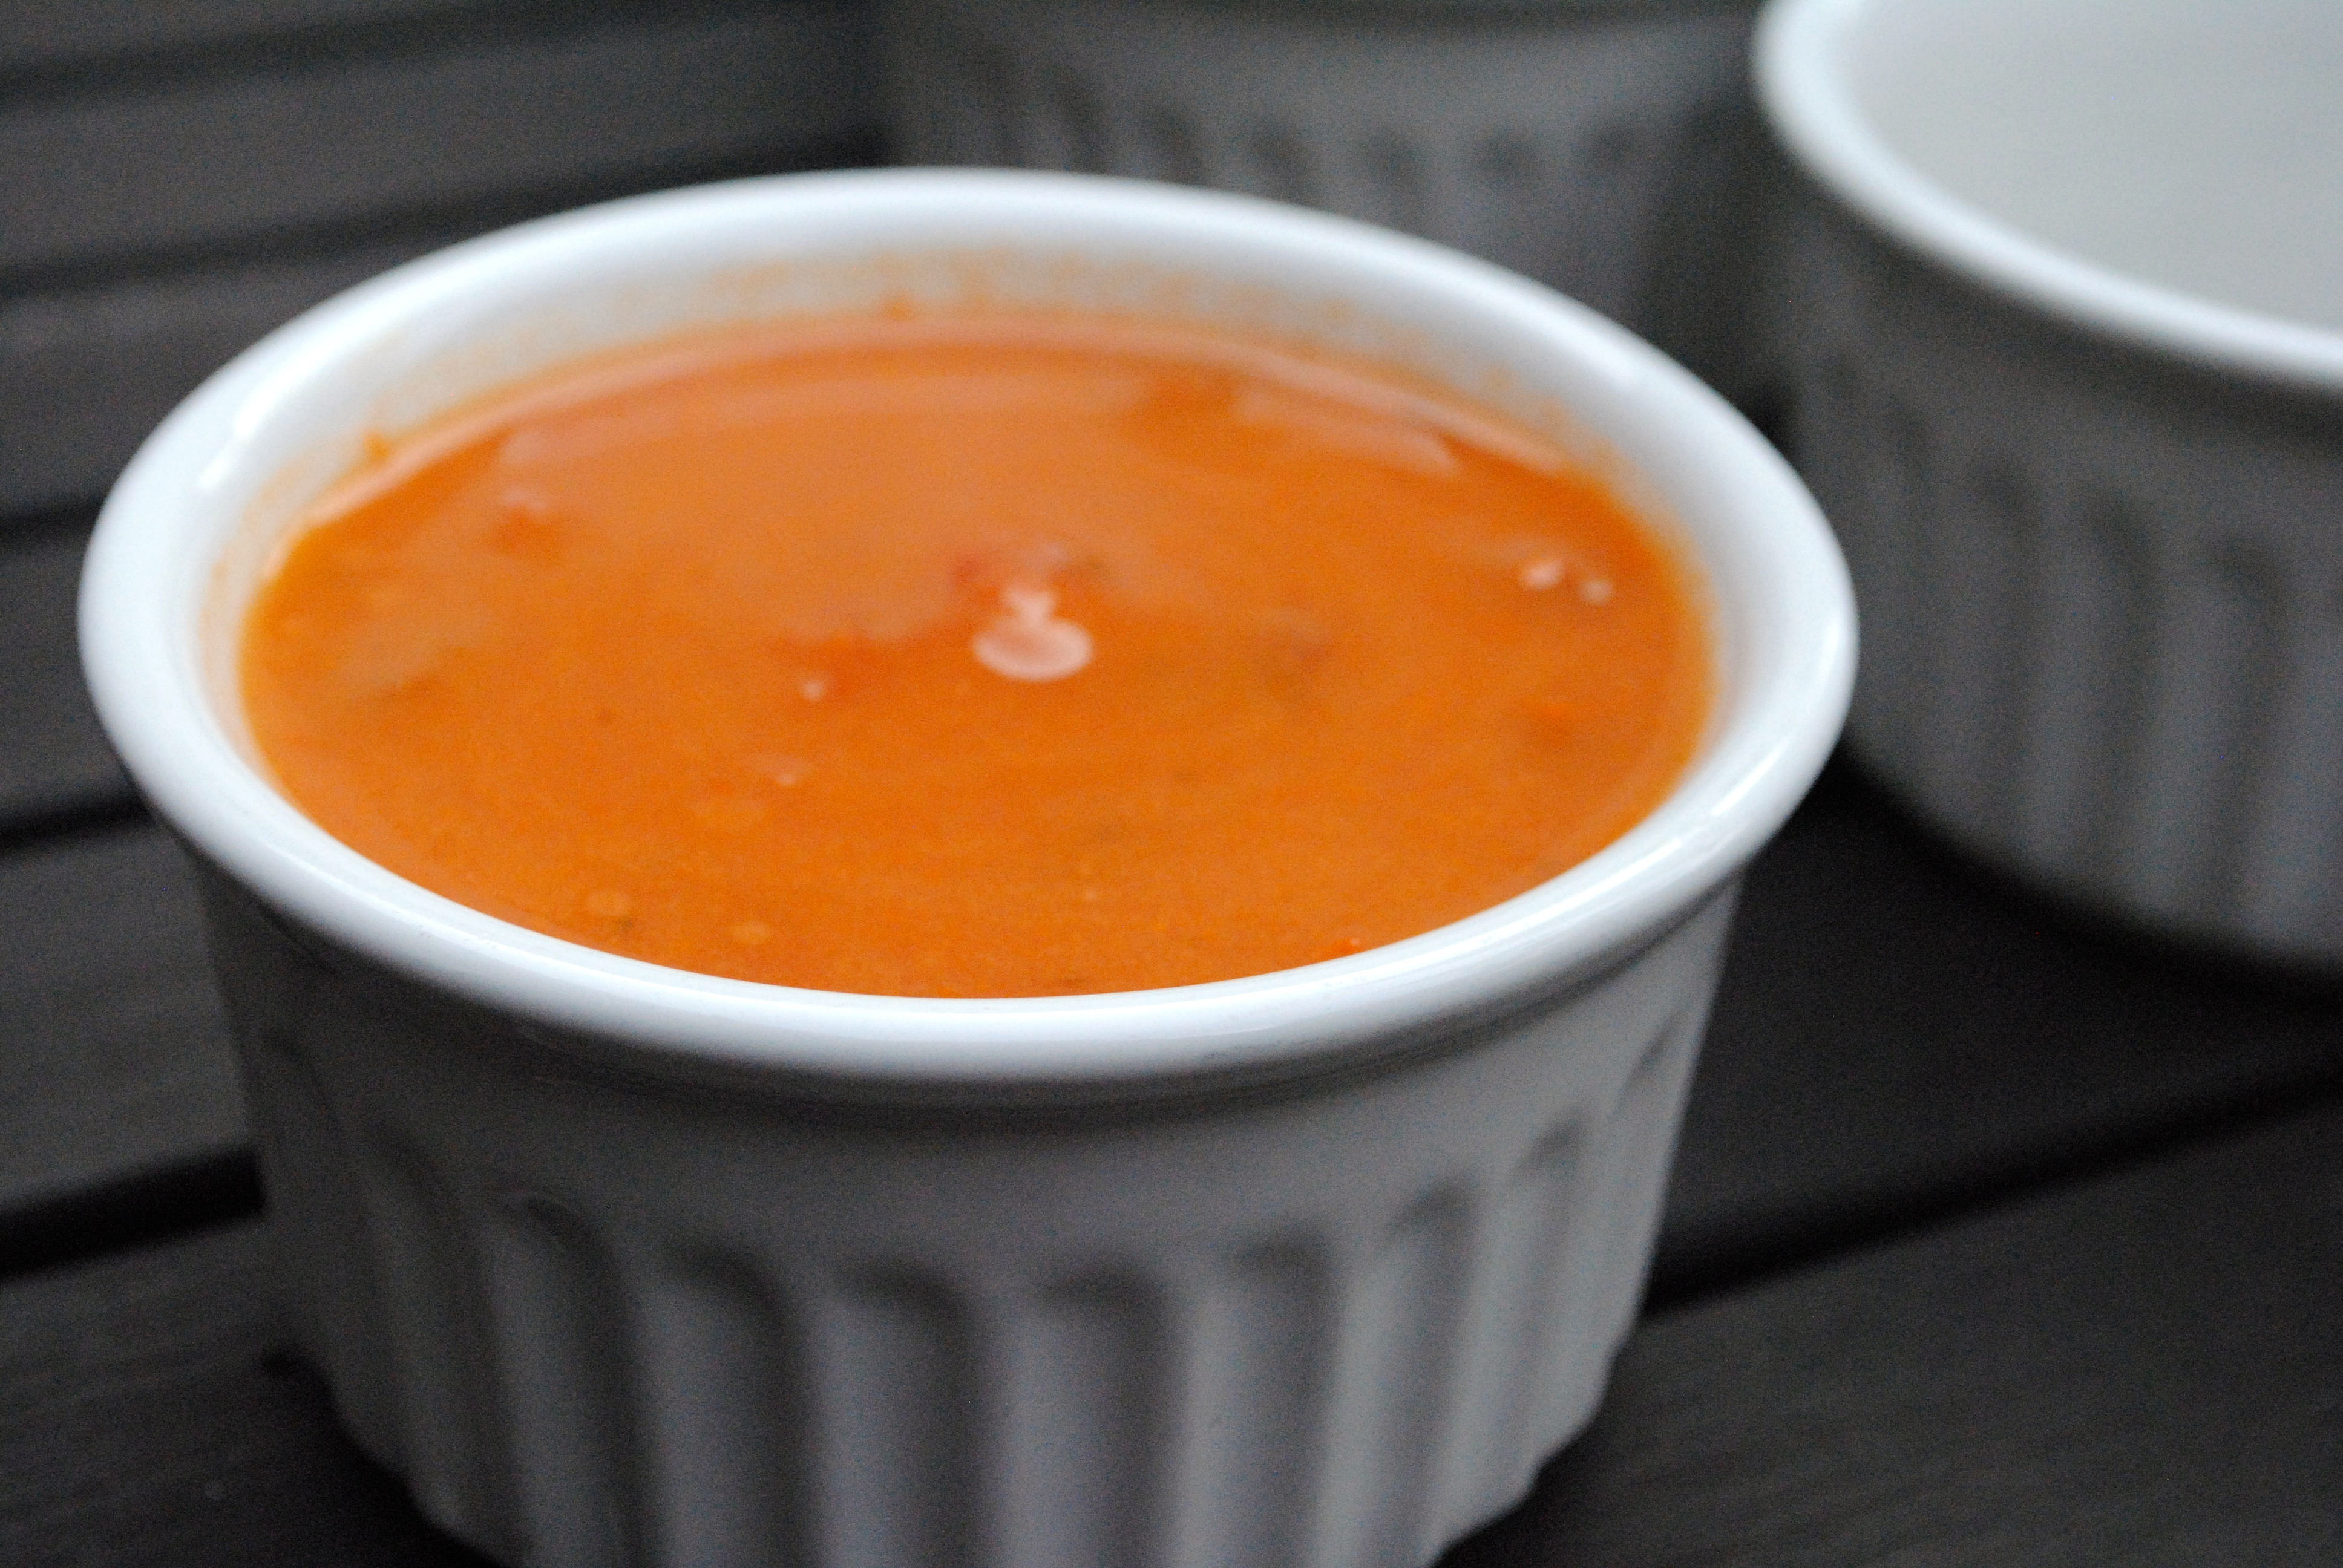 Tomato Soup In 20 Minutes!